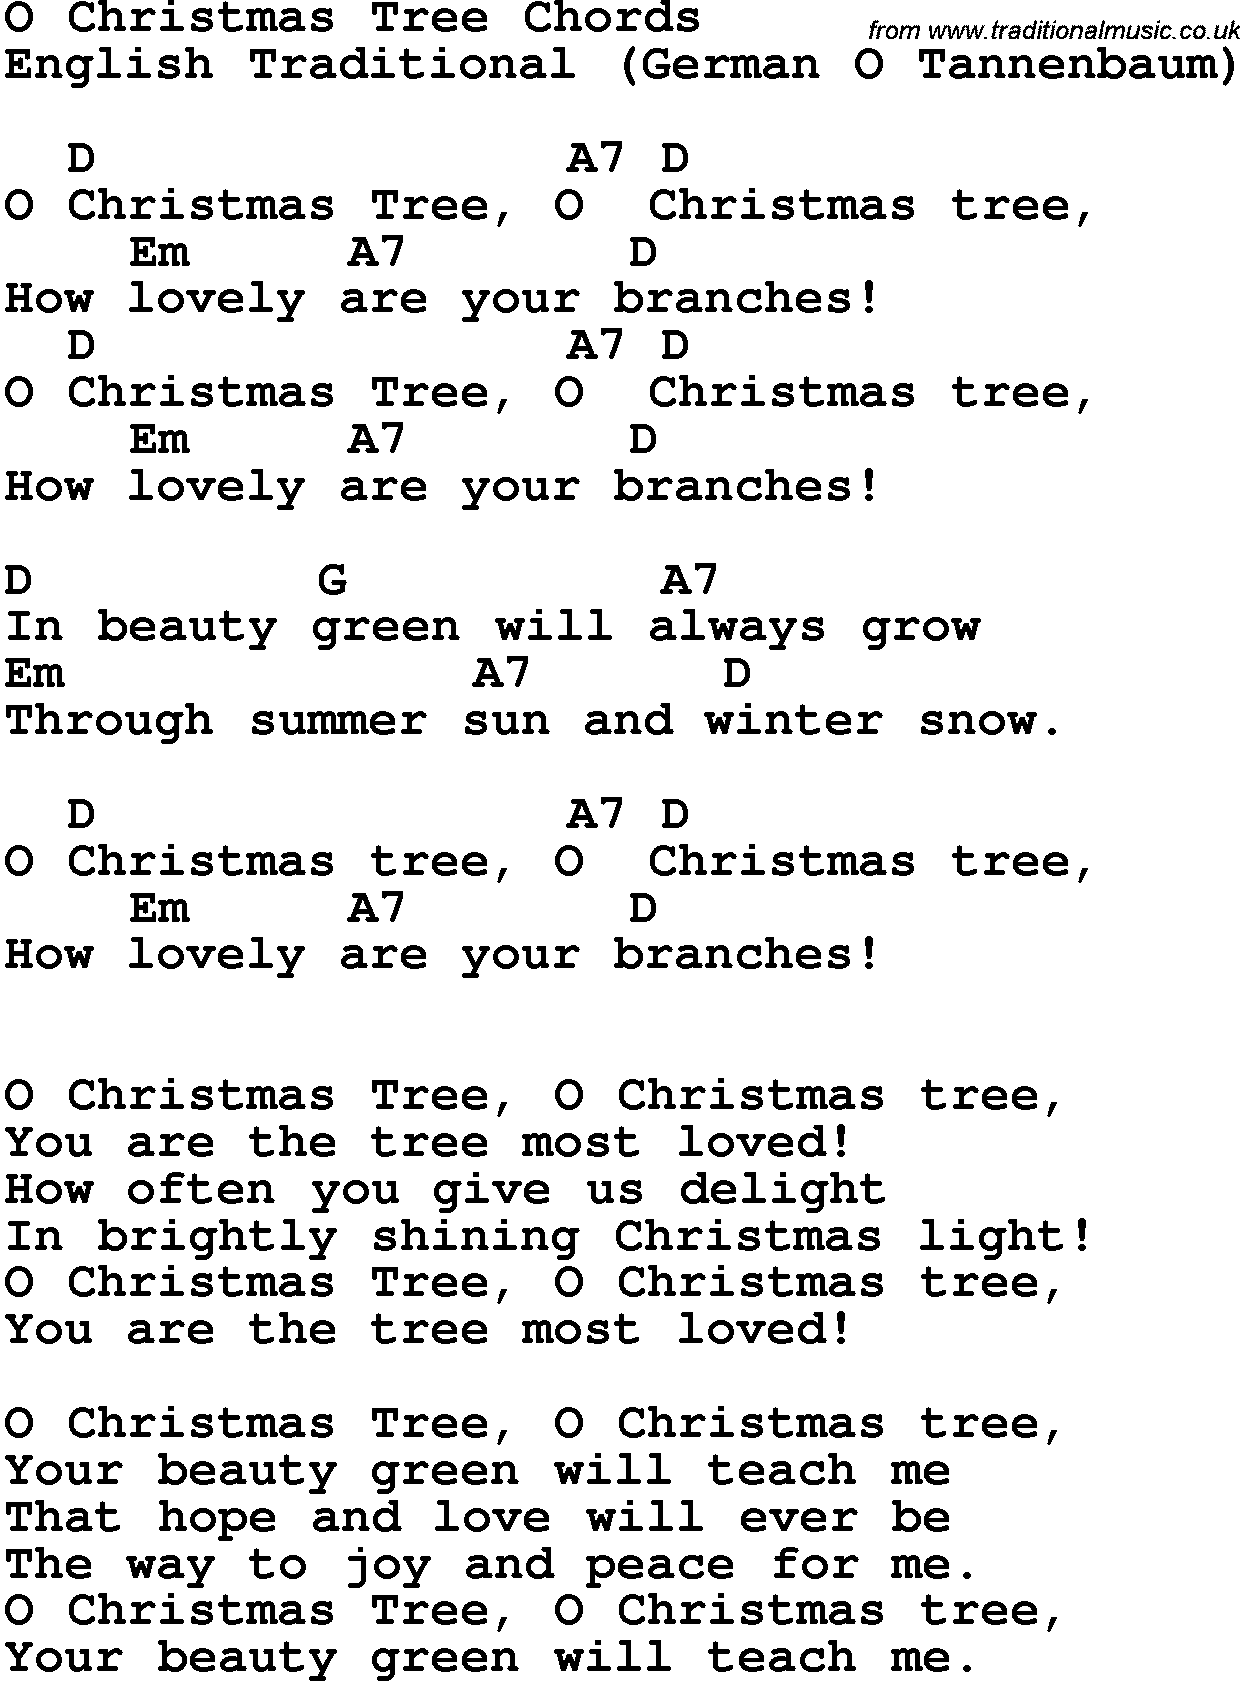 Song Lyrics With Guitar Chords For O Christmas Tree 2 U1hu2eur